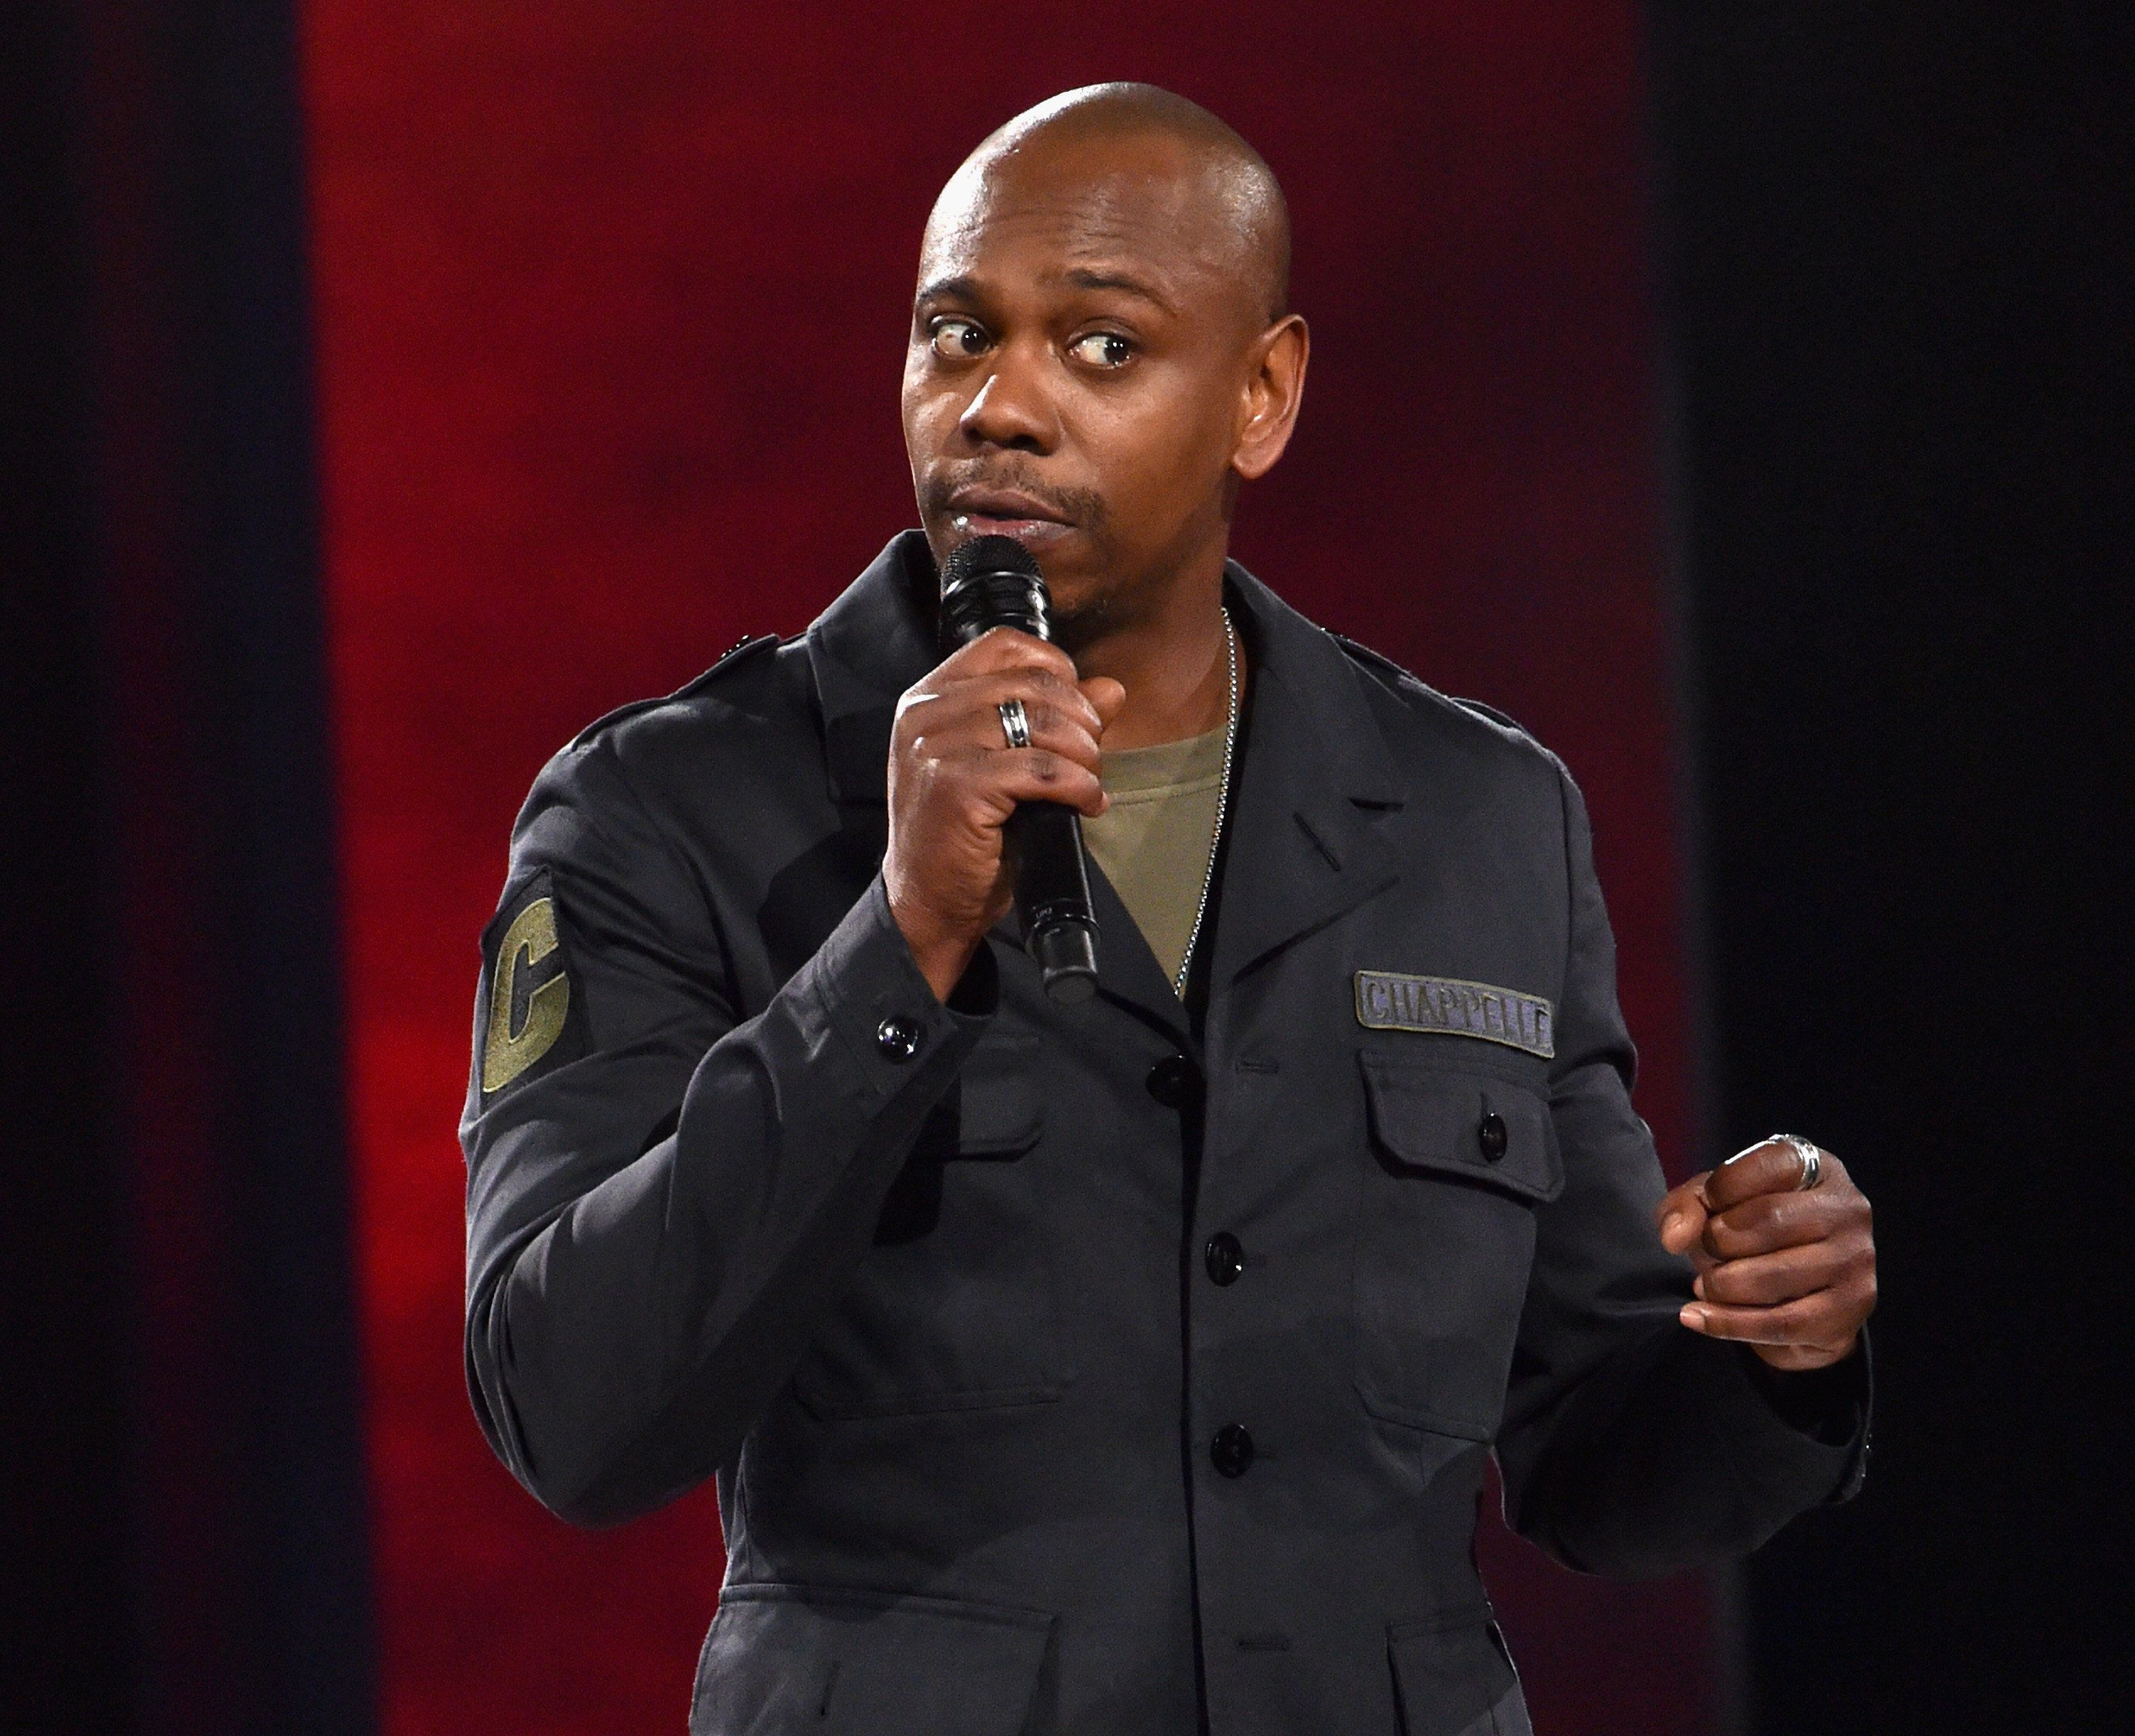 Dave Chappelle Sparks Controversy With Comedy Routine On